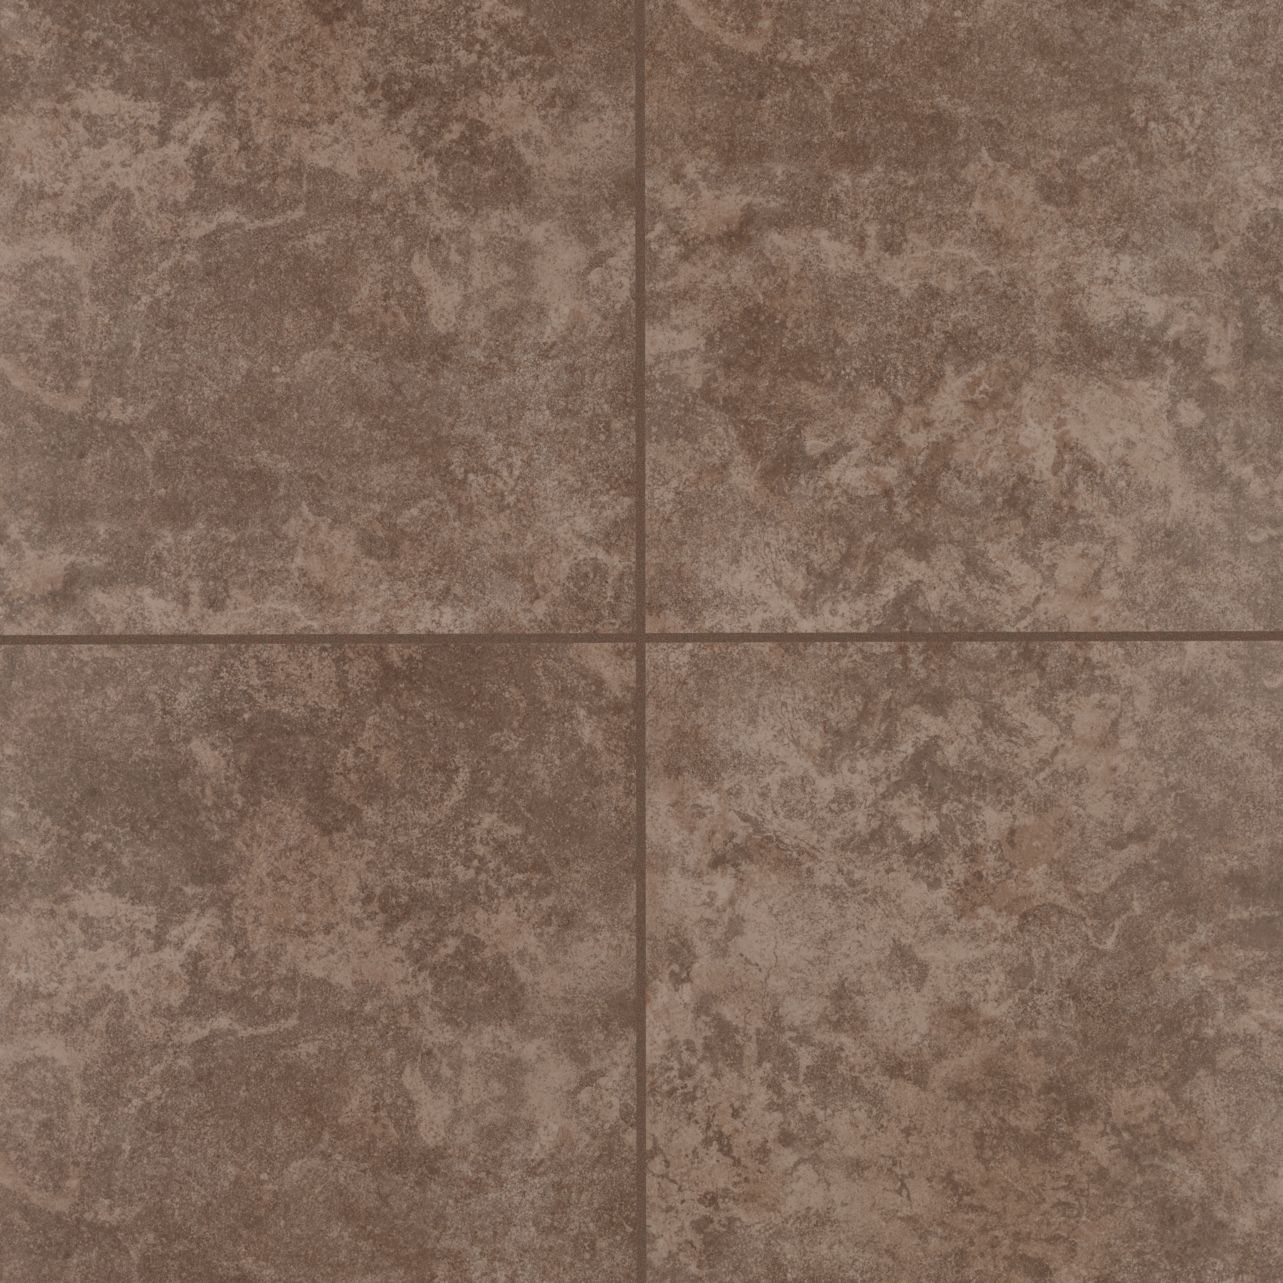 CeramicPorcelainTile AstelloWall T810F-AN36 Brown